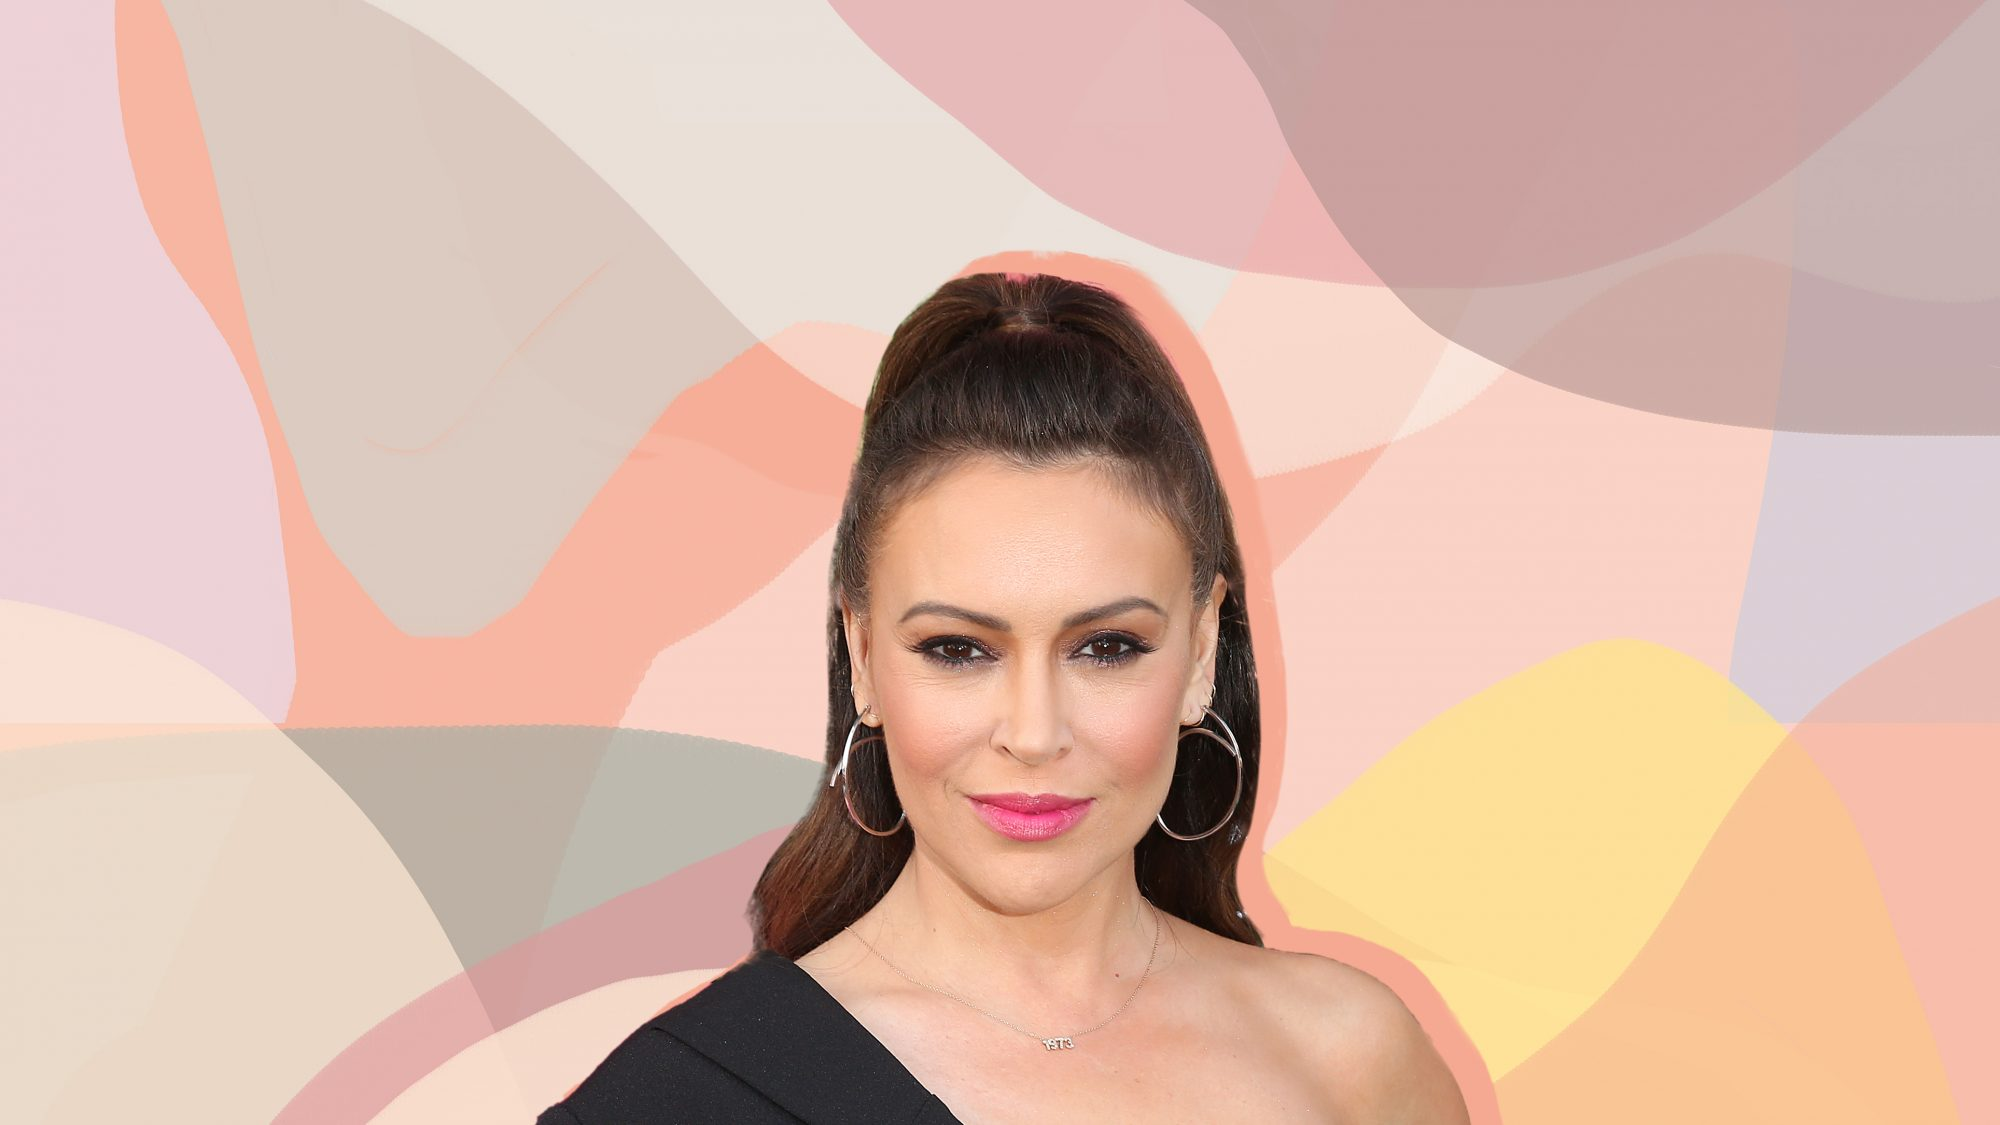 Alyssa Milano Had 2 Abortions After Getting Pregnant On the Pill. Here's How That Can Happen